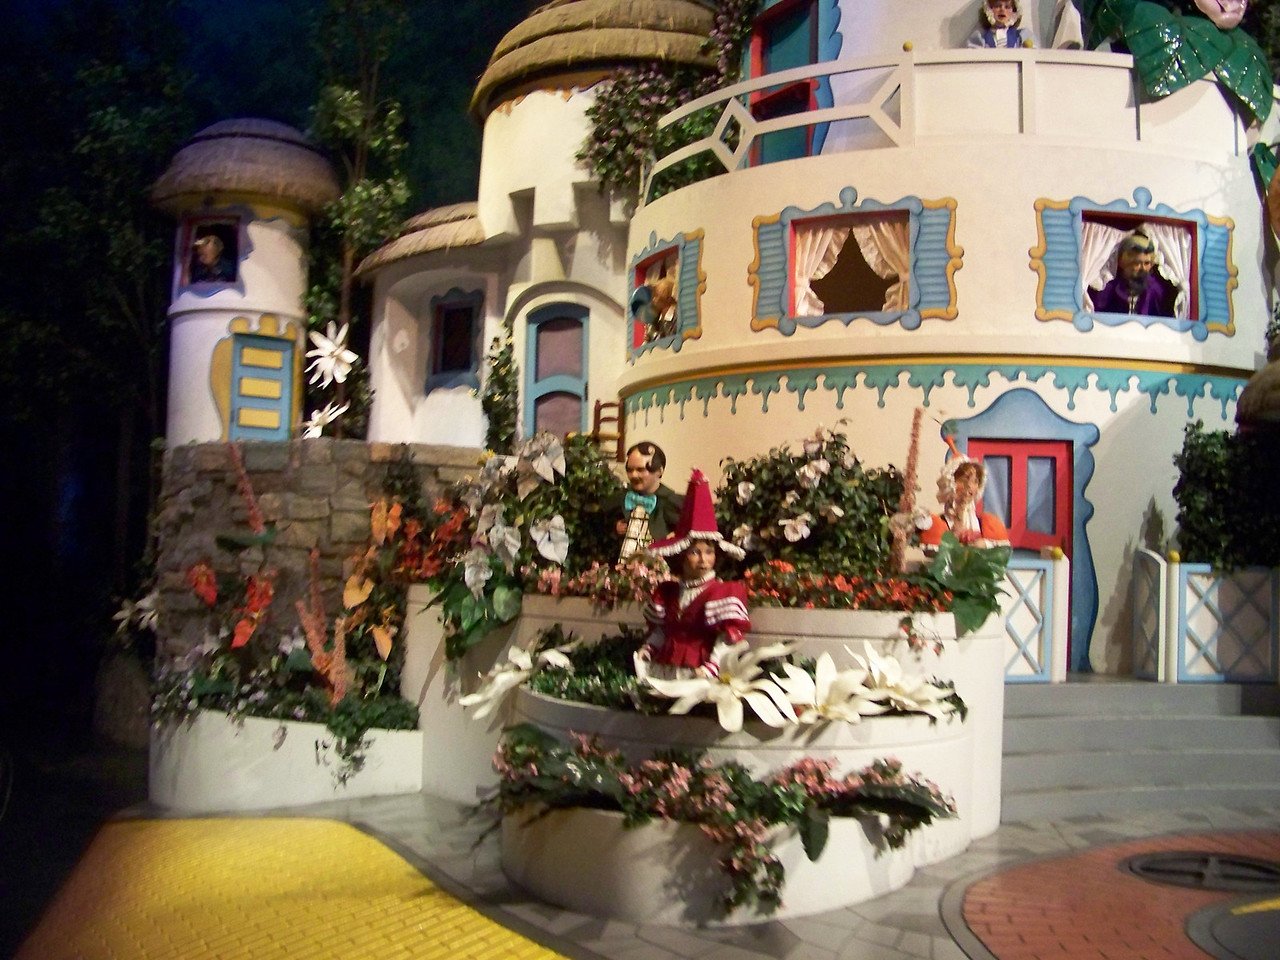 For the last big animatronic scene, we roll into Munchkinland from the Wizard of Oz.<br /> [Disney's Hollywood Studios - Great Movie Ride]